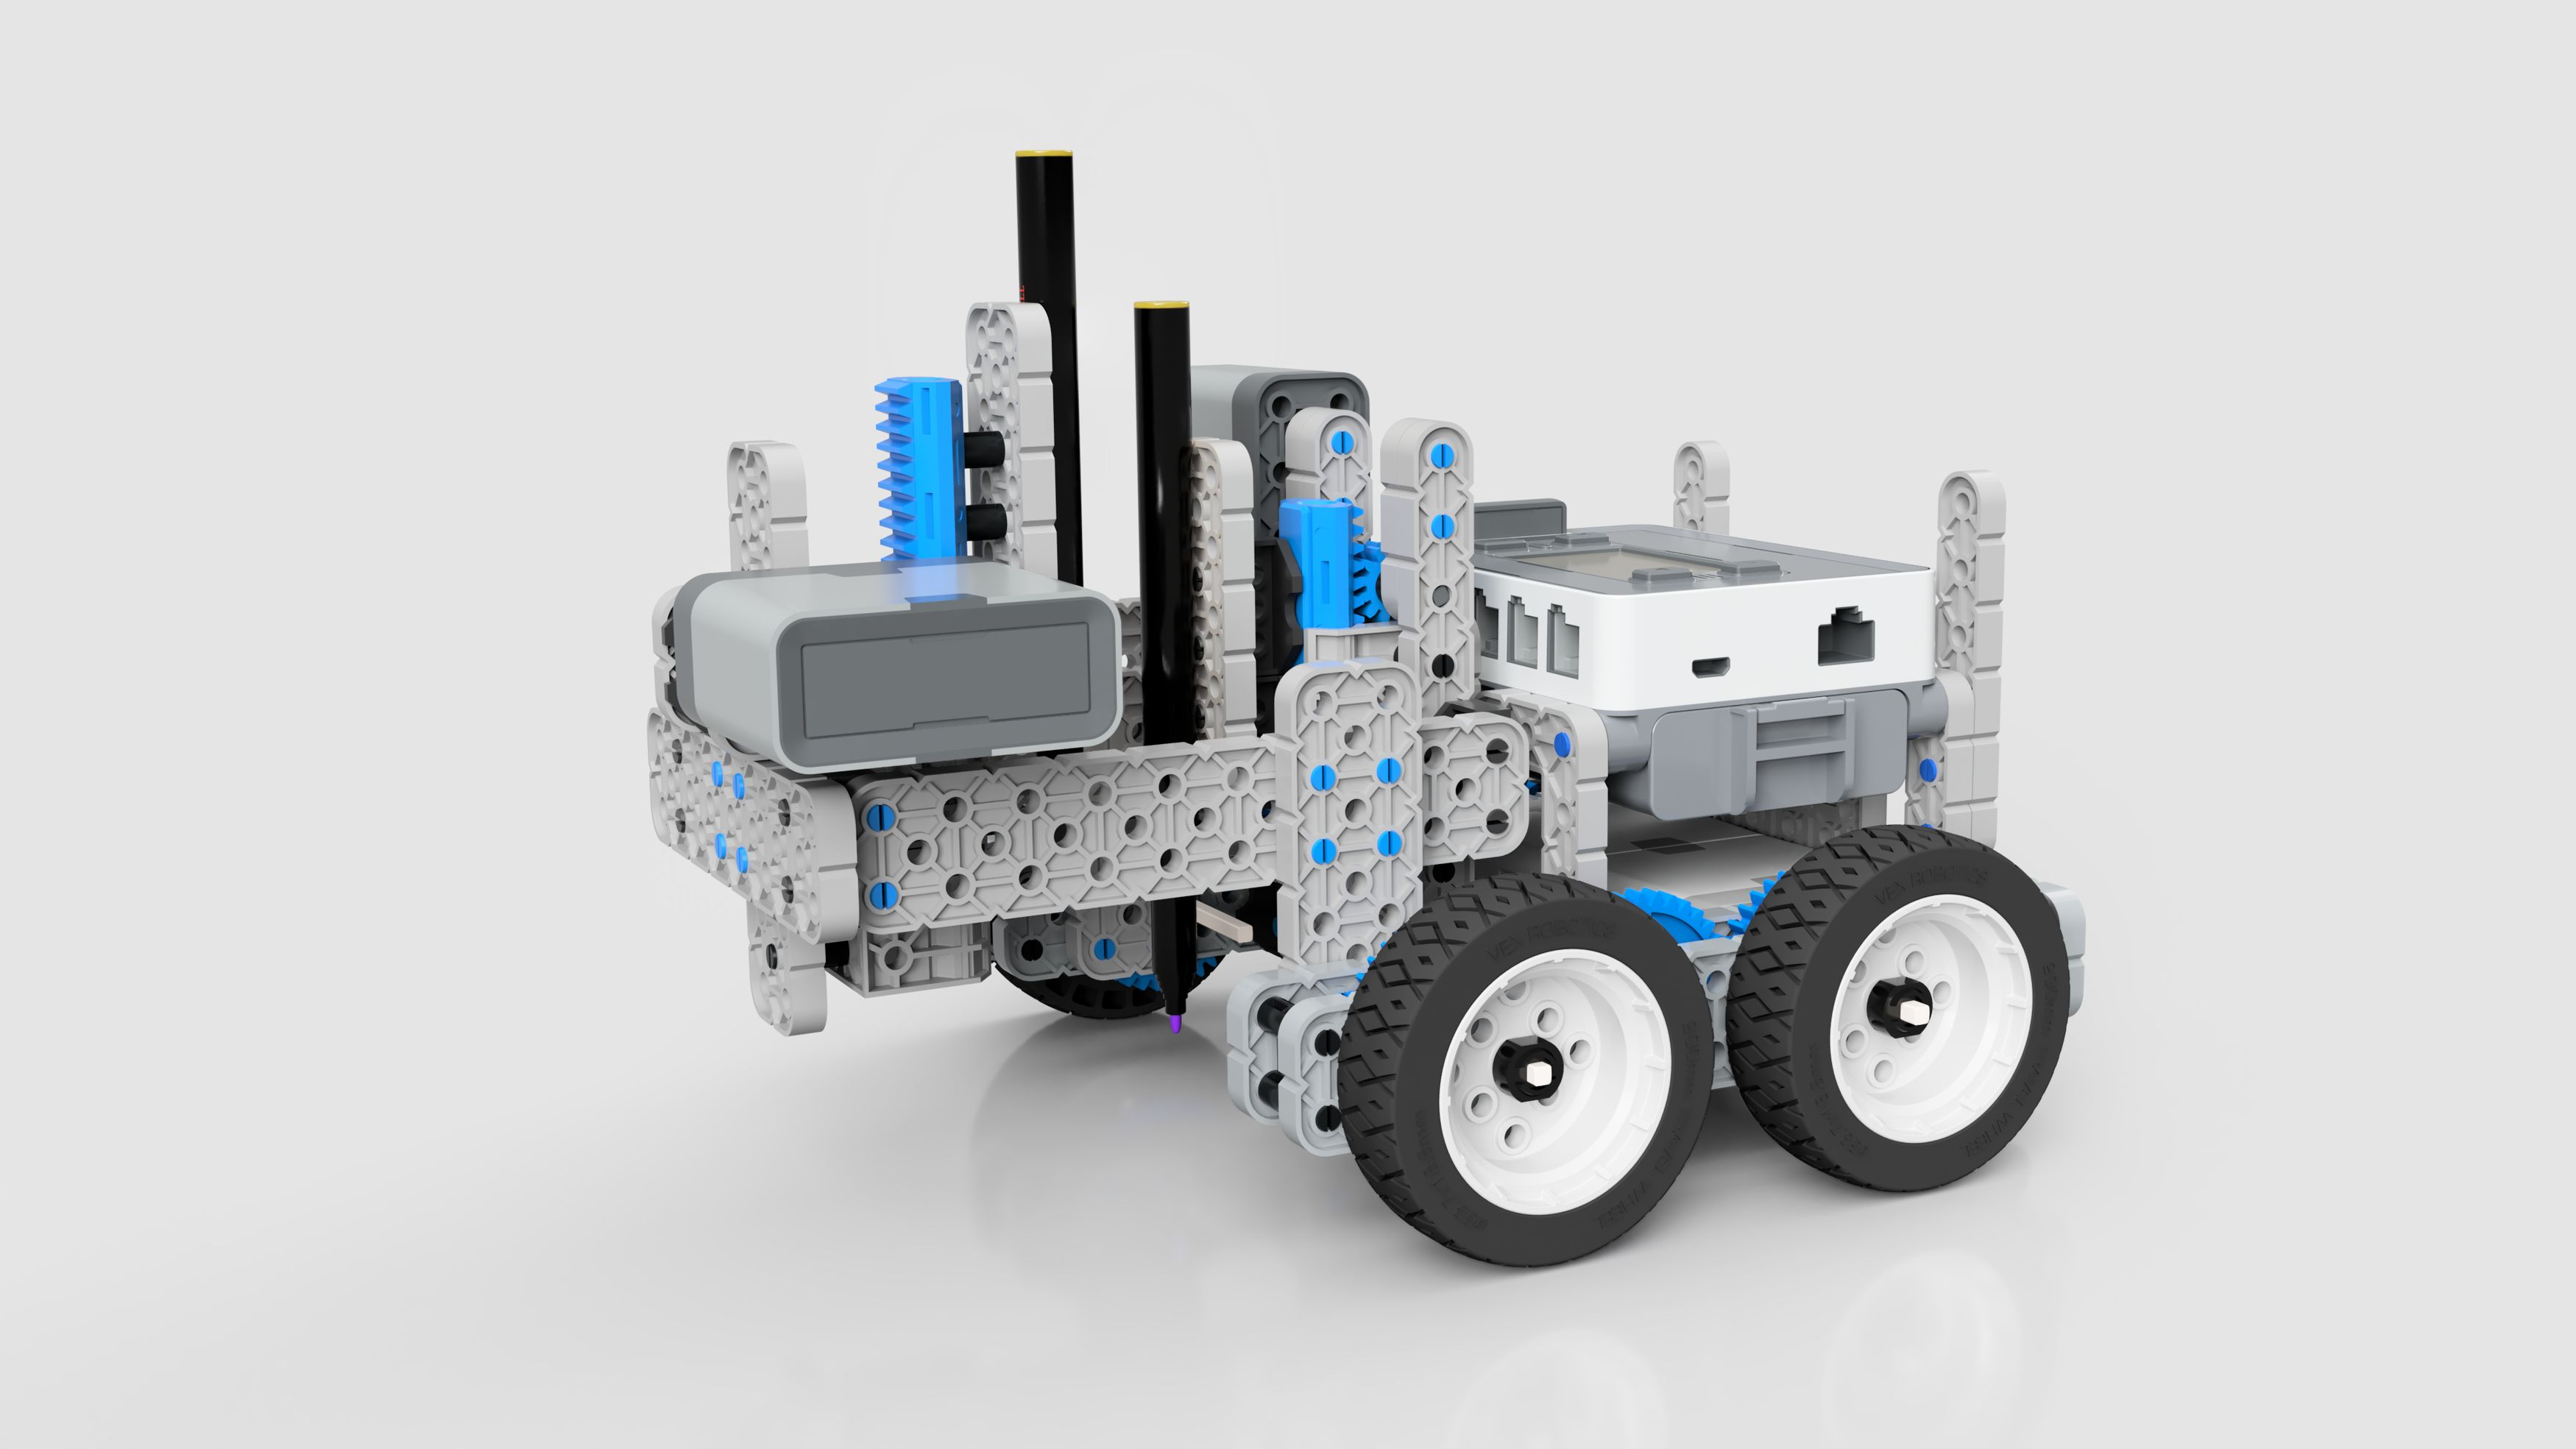 Vex-iq-robot-caneta-2020-may-24-06-02-50pm-000-customizedview29790838583-png-3500-3500